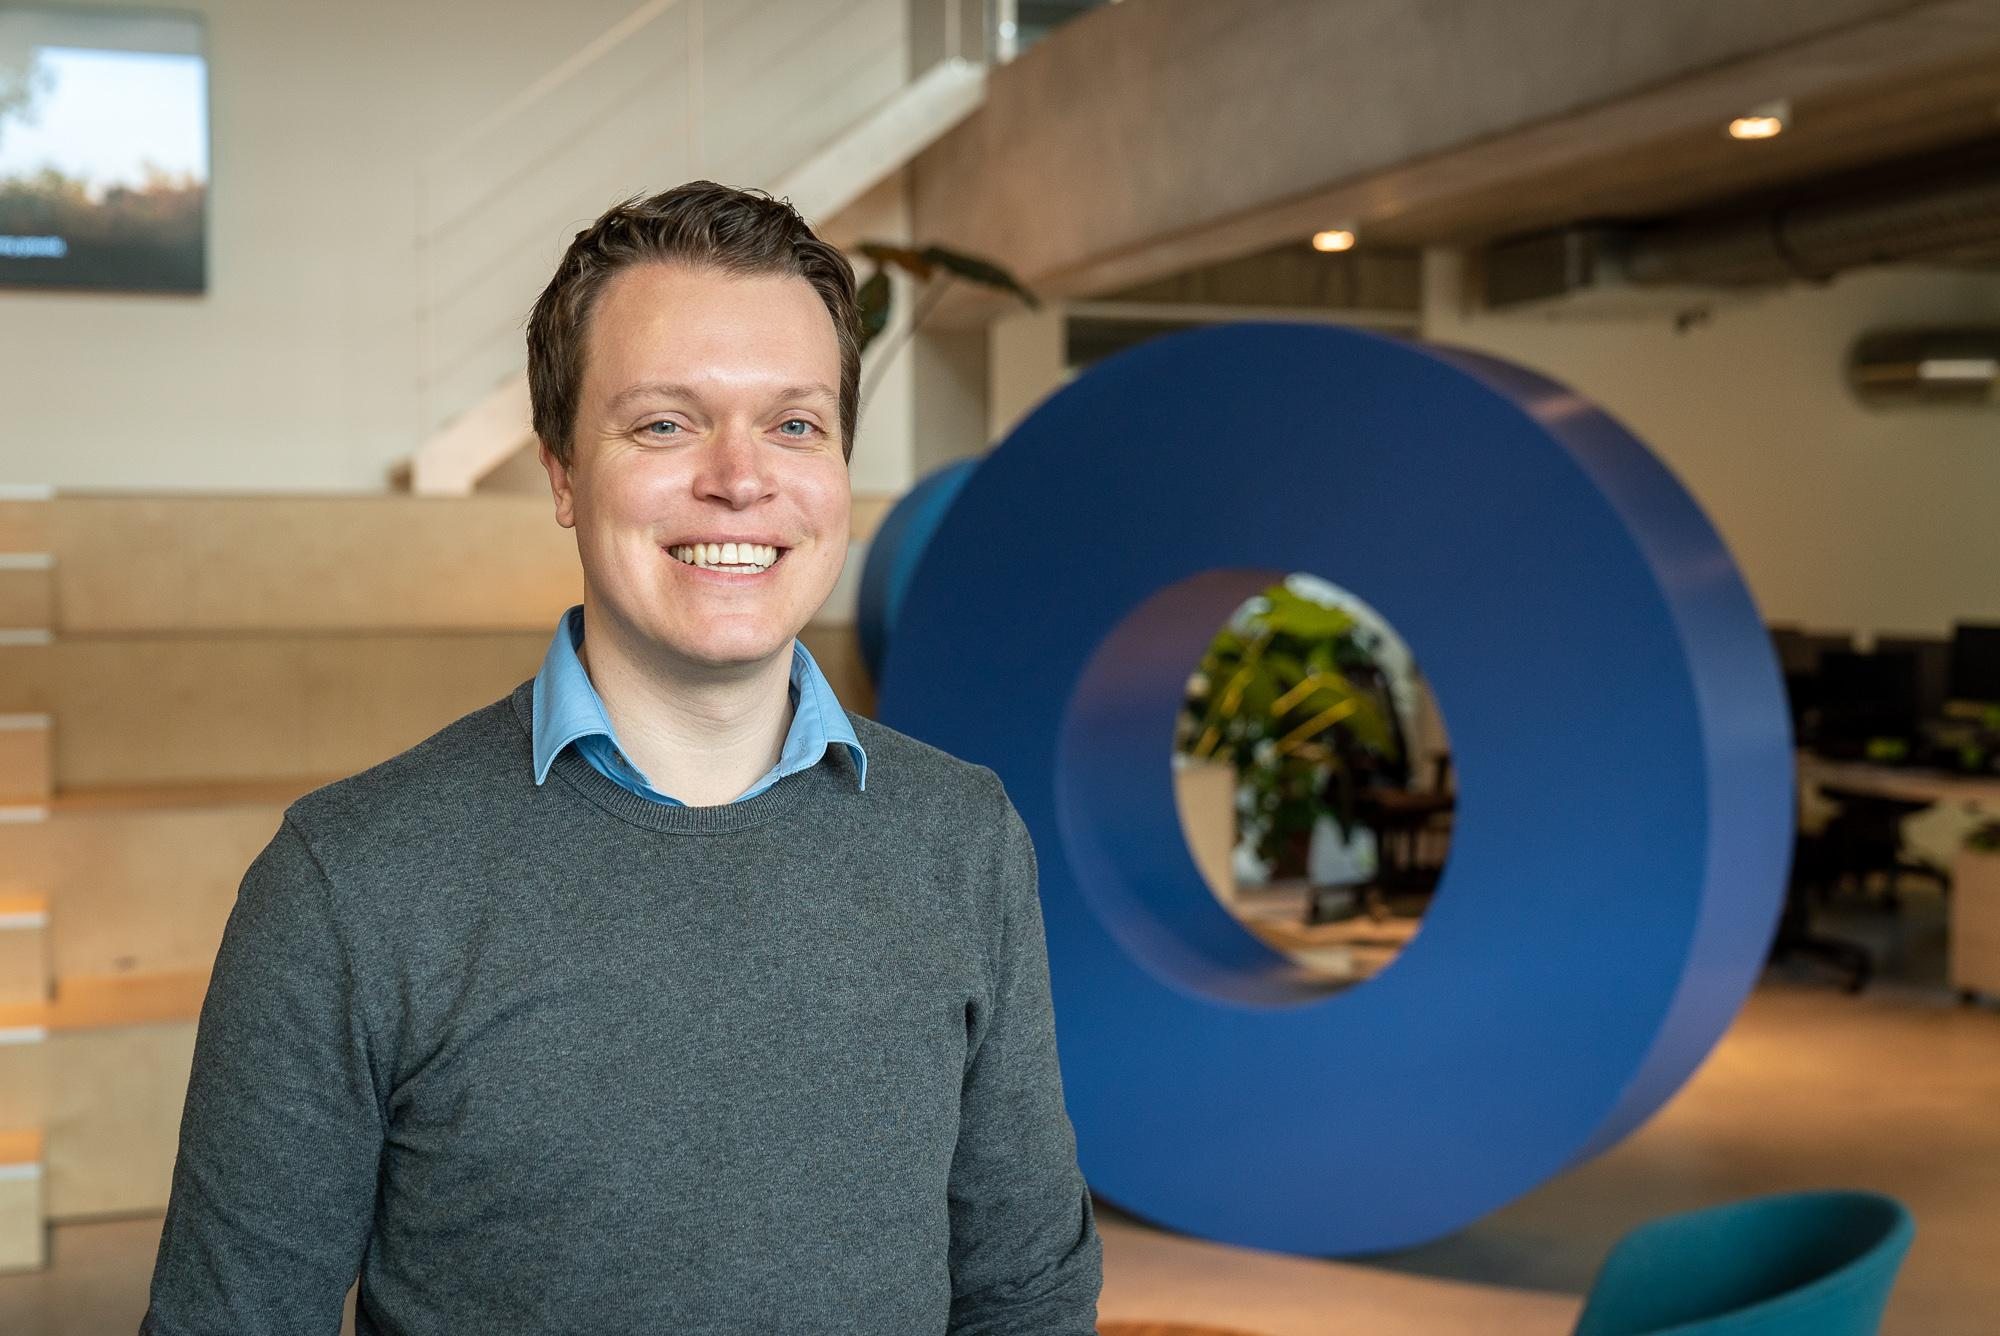 Mathias Vissers, innovatie-expert bij digital agency Intracto